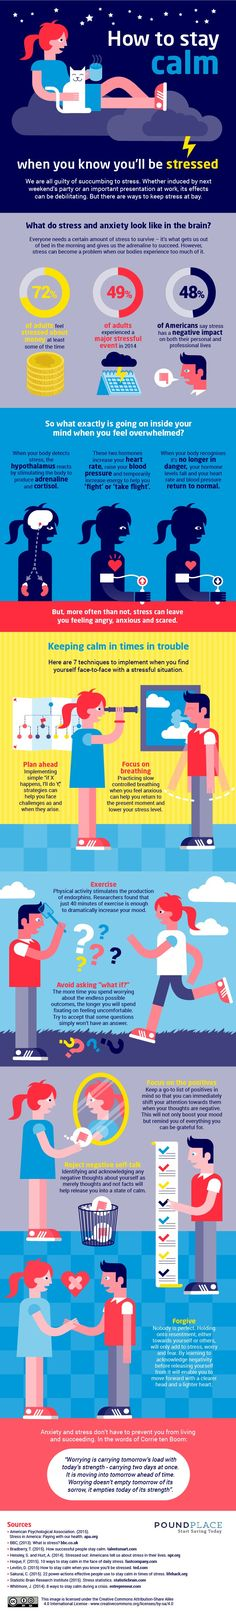 How to Stay Calm When Stress is Upon You [Infographic]